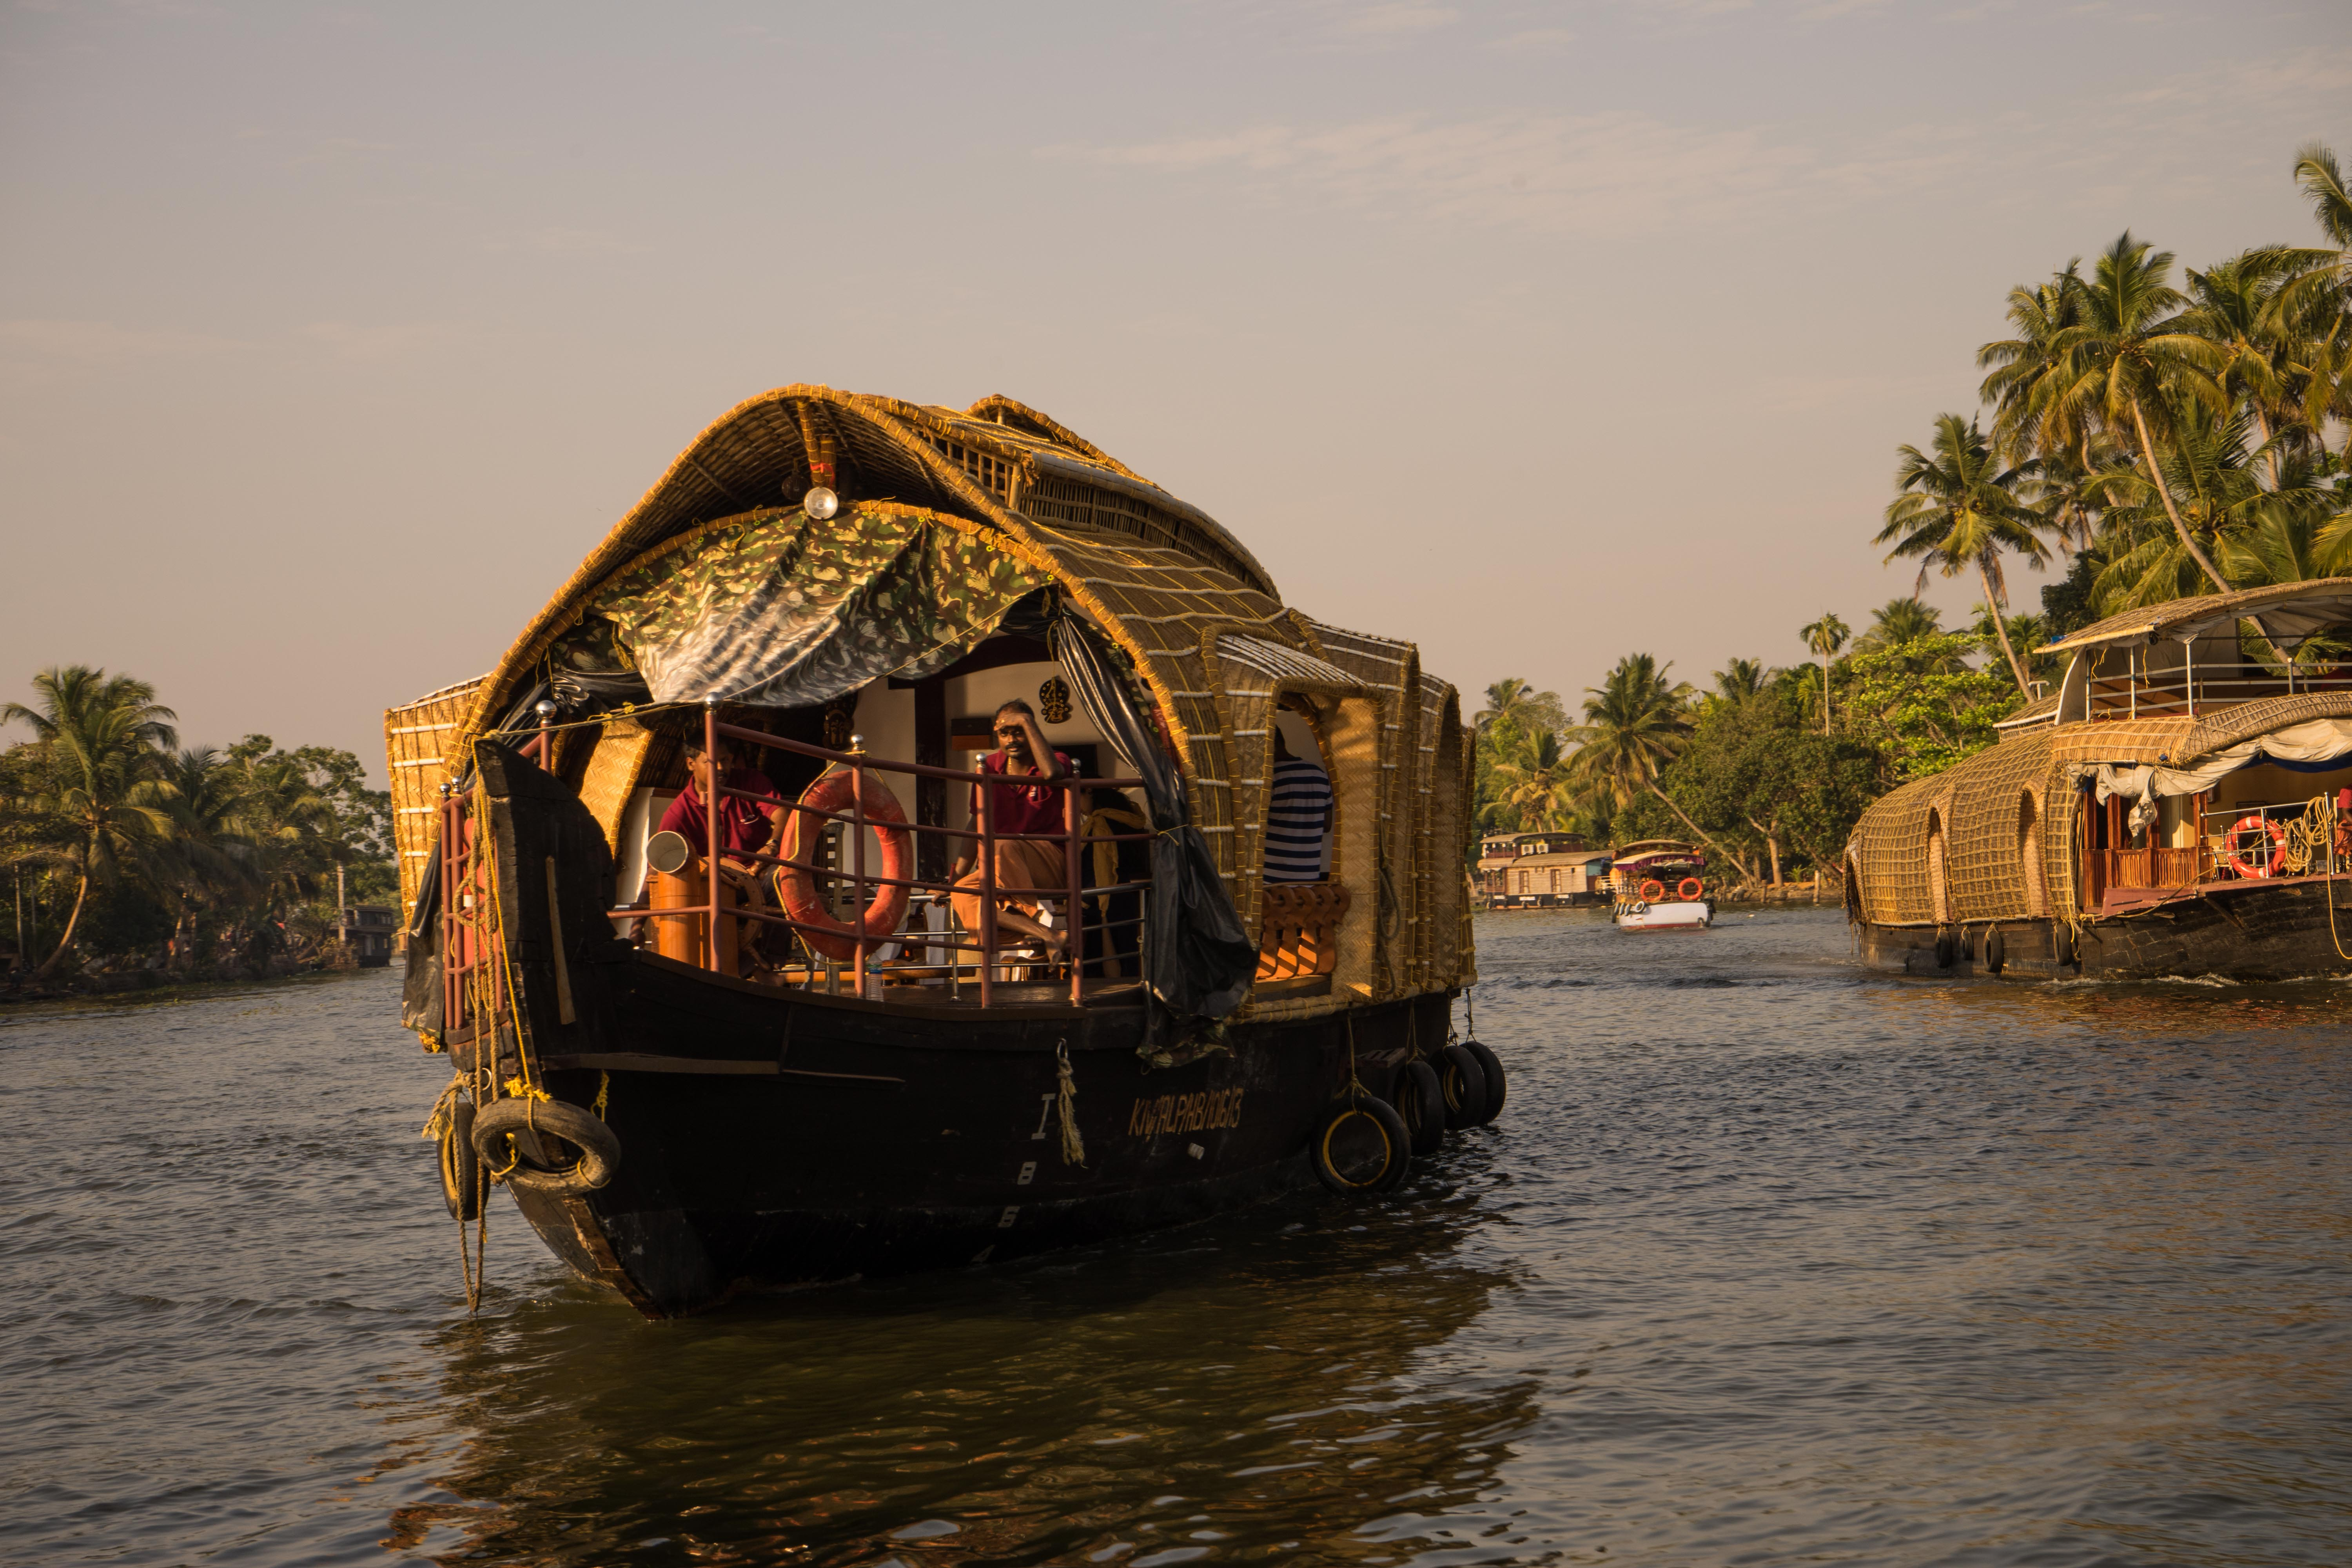 A typical local boat like you find them all over Alleppey